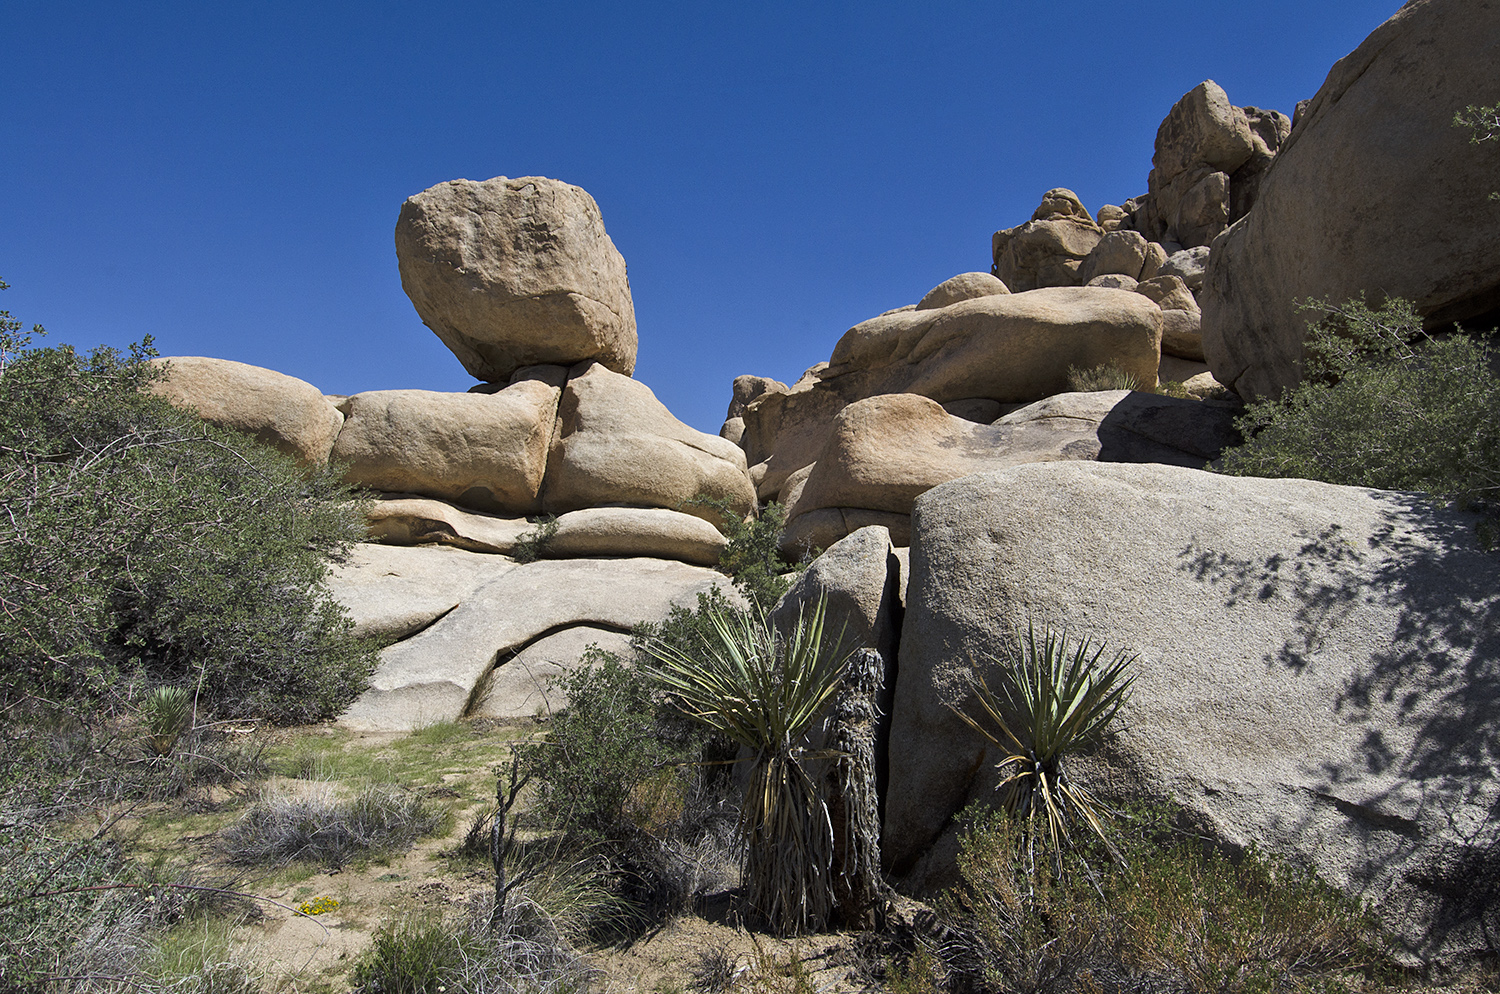 Have you ever noticed how many huge, balanced boulders there are in Joshua Tree?